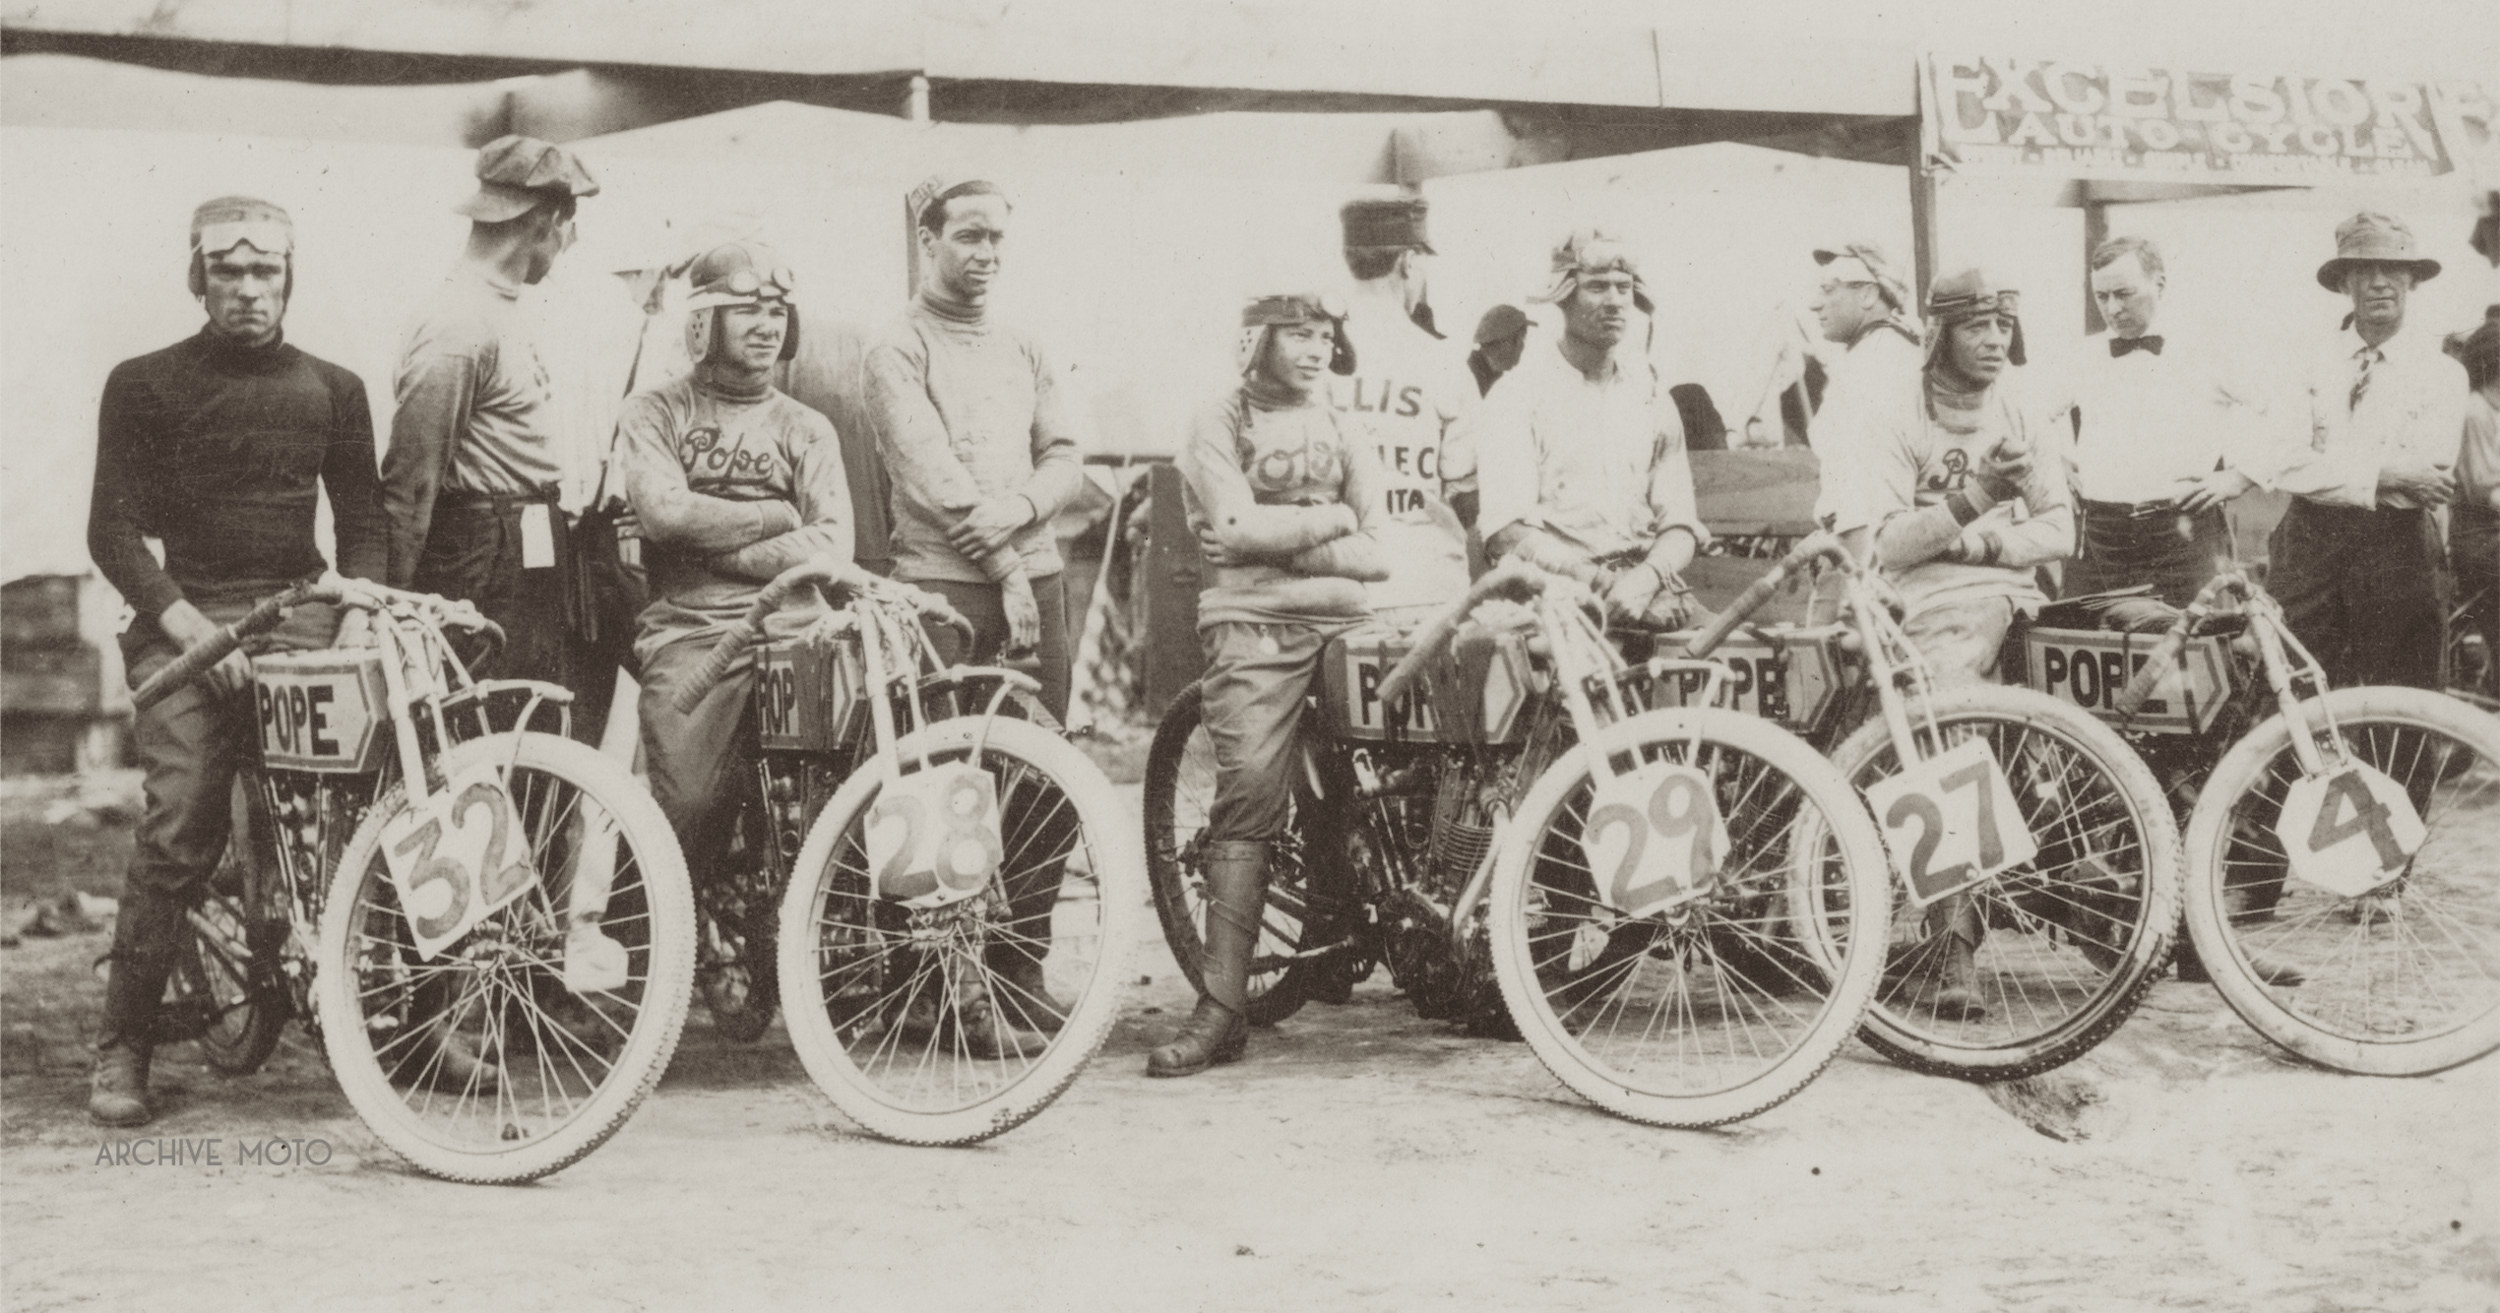 Seen in this image are the five members of the Pope factory racing team at the inaugural Dodge City 300 on July 4, 1914. They are, in no specific order, Wichita's Edgar Roy, Westfield's William Lambert, E. Fabian and Maurice Tice from Bakersfield, and Dodge City's own H. Crutchley.